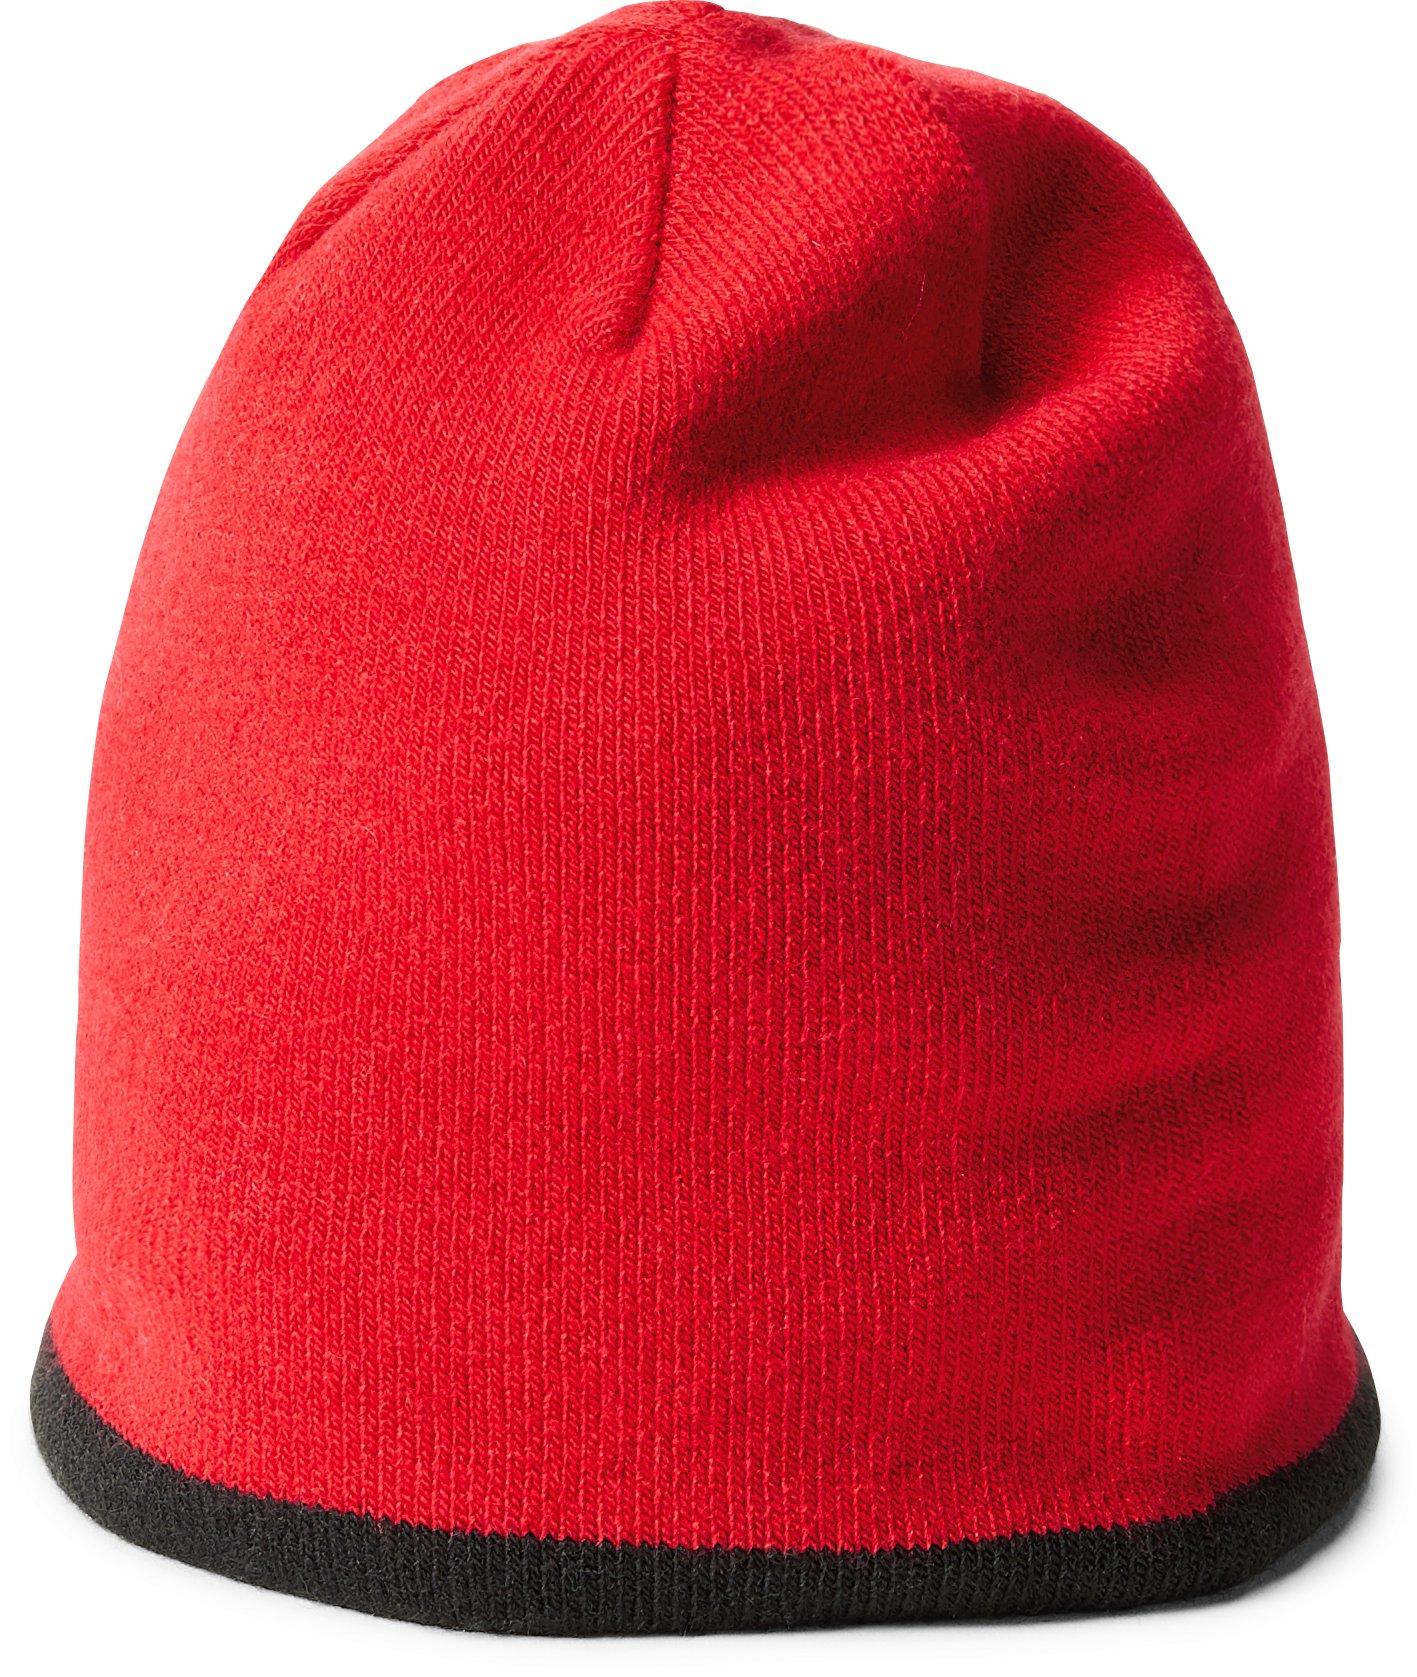 Boys' Toddler UA Double Layer Reversible Beanie, Red